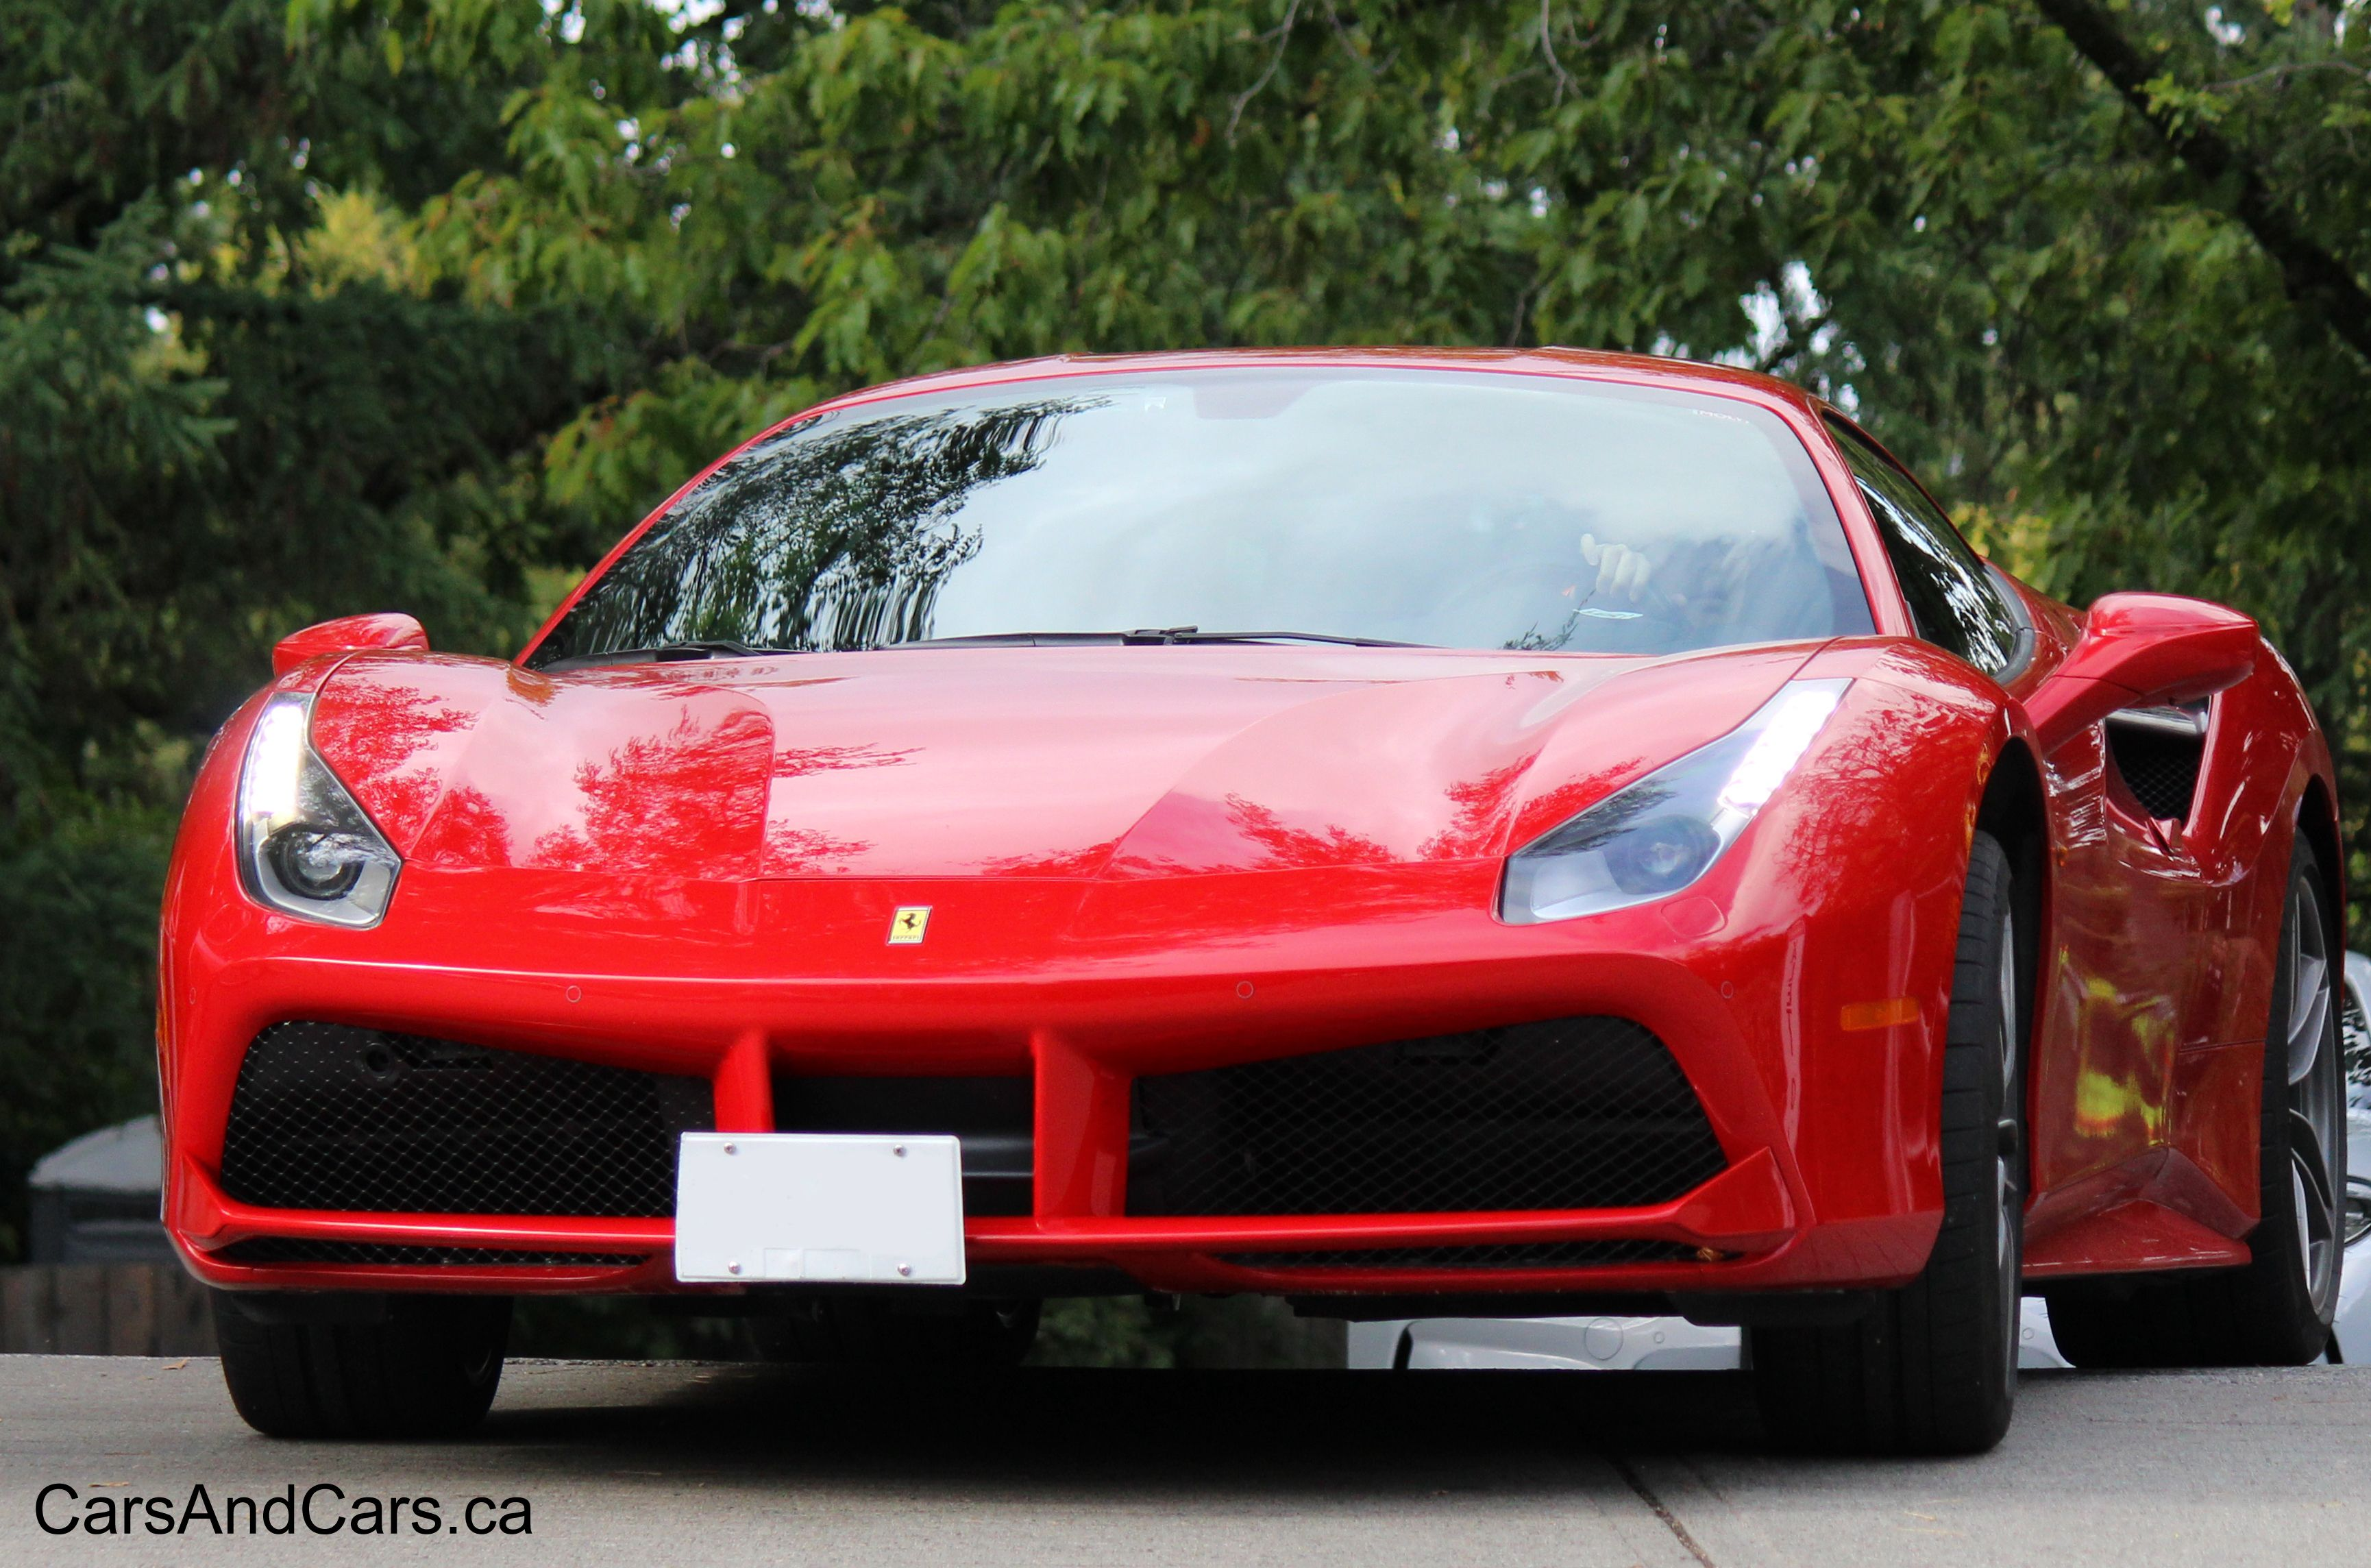 Ferrari 488 Gtb In 2020 Ferrari For Sale Ferrari Ferrari 488